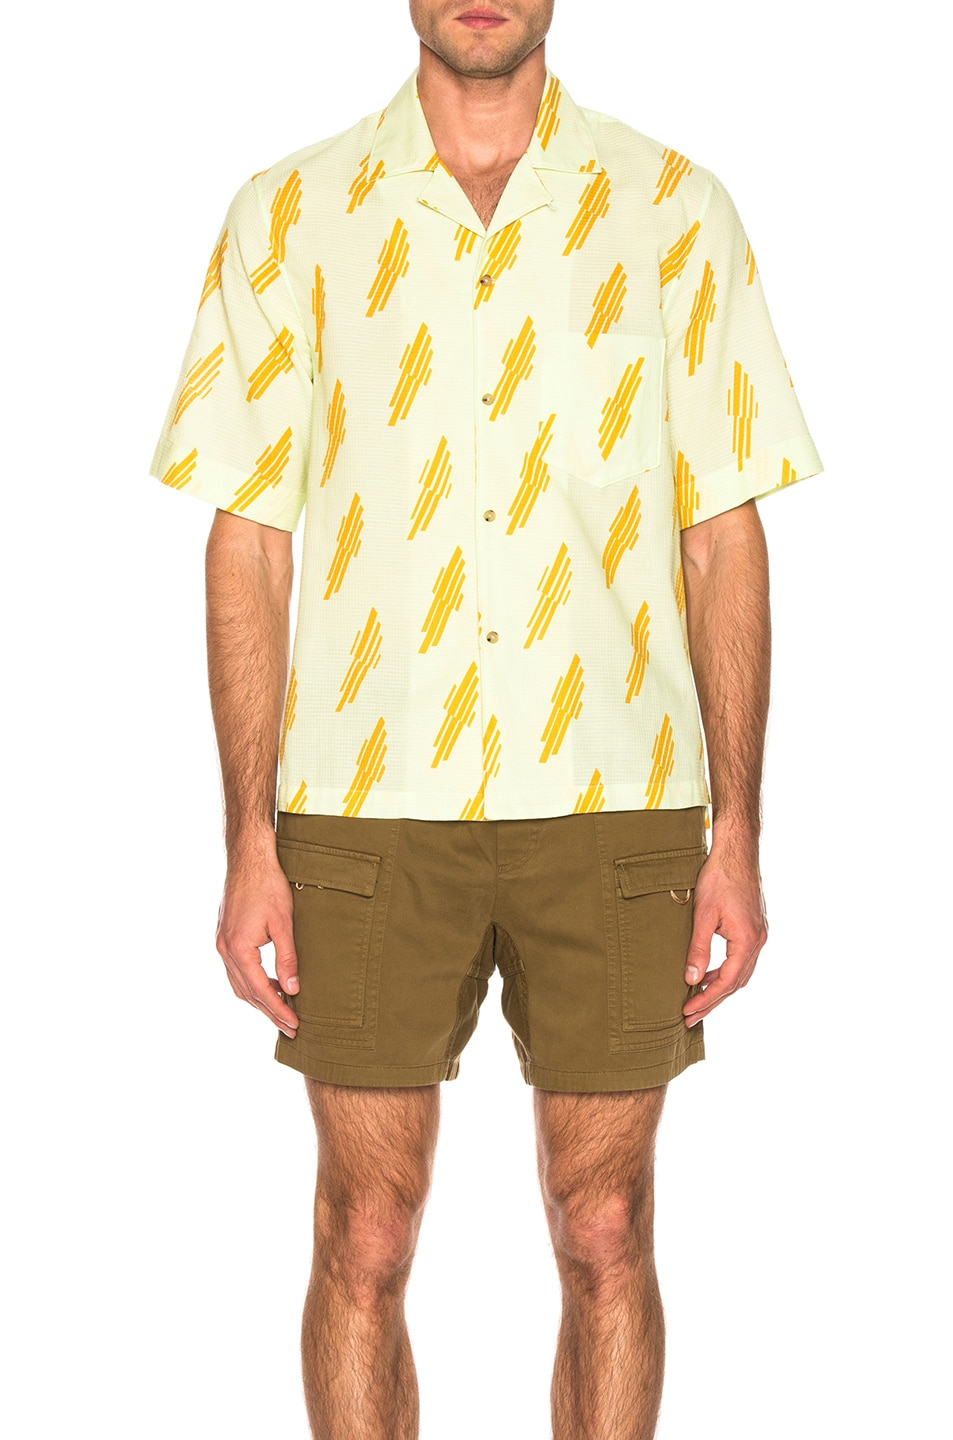 Image 2 of Acne Studios Simon Diag Shirt in Mint Green & Sunflower Yellow